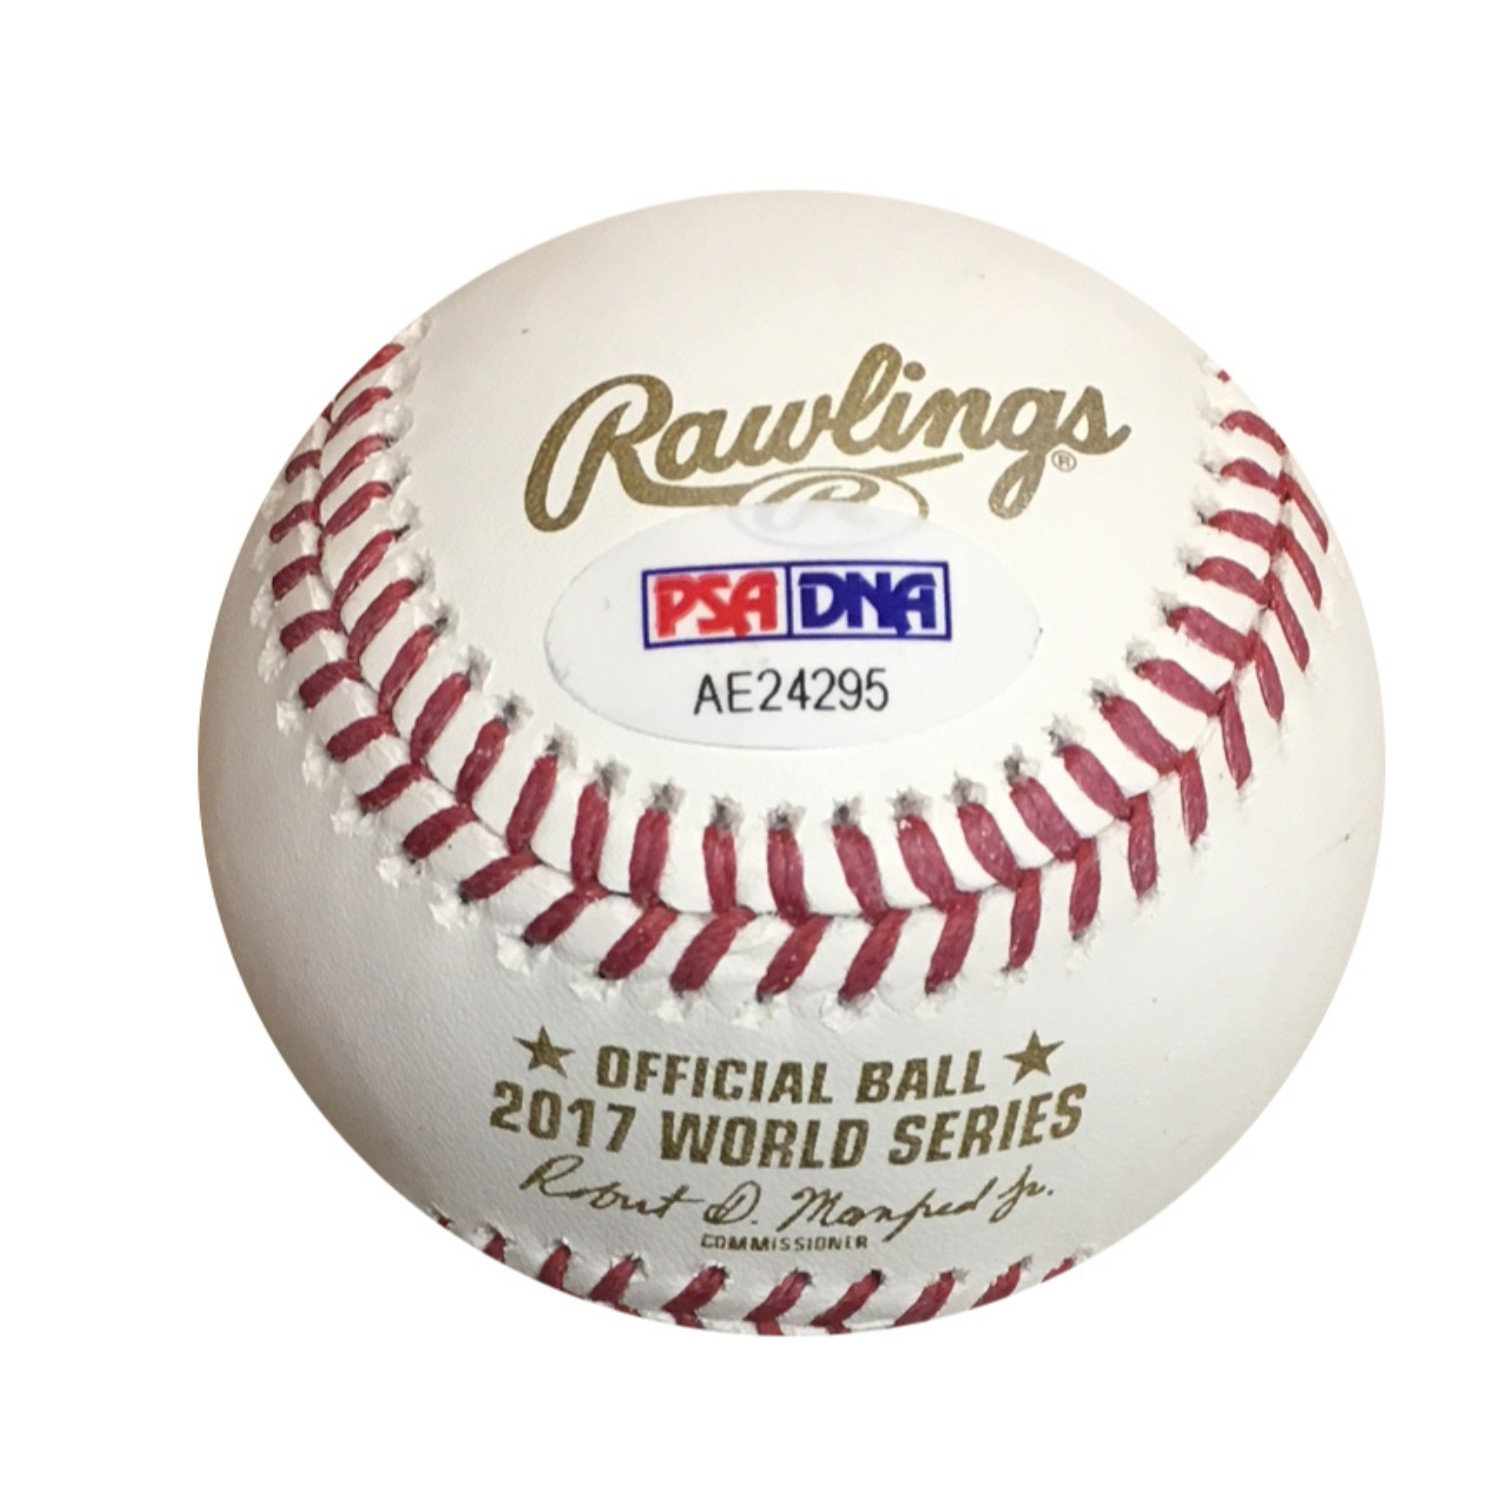 Carlos Correa Houston Astros Autographed 2017 World Series Signed Baseball PSA DNA COA 2017 World Series champion Carlos Correa has signed this official 2017 World Series baseball. Autograph is authenticated by PSA/DNA, the world's leading authenticator of sports autographs. Comes with their unique sticker # fixed to the item and verified on their website. Also, comes with their certificate of authenticity with same matching #.  Receive exact item shown.